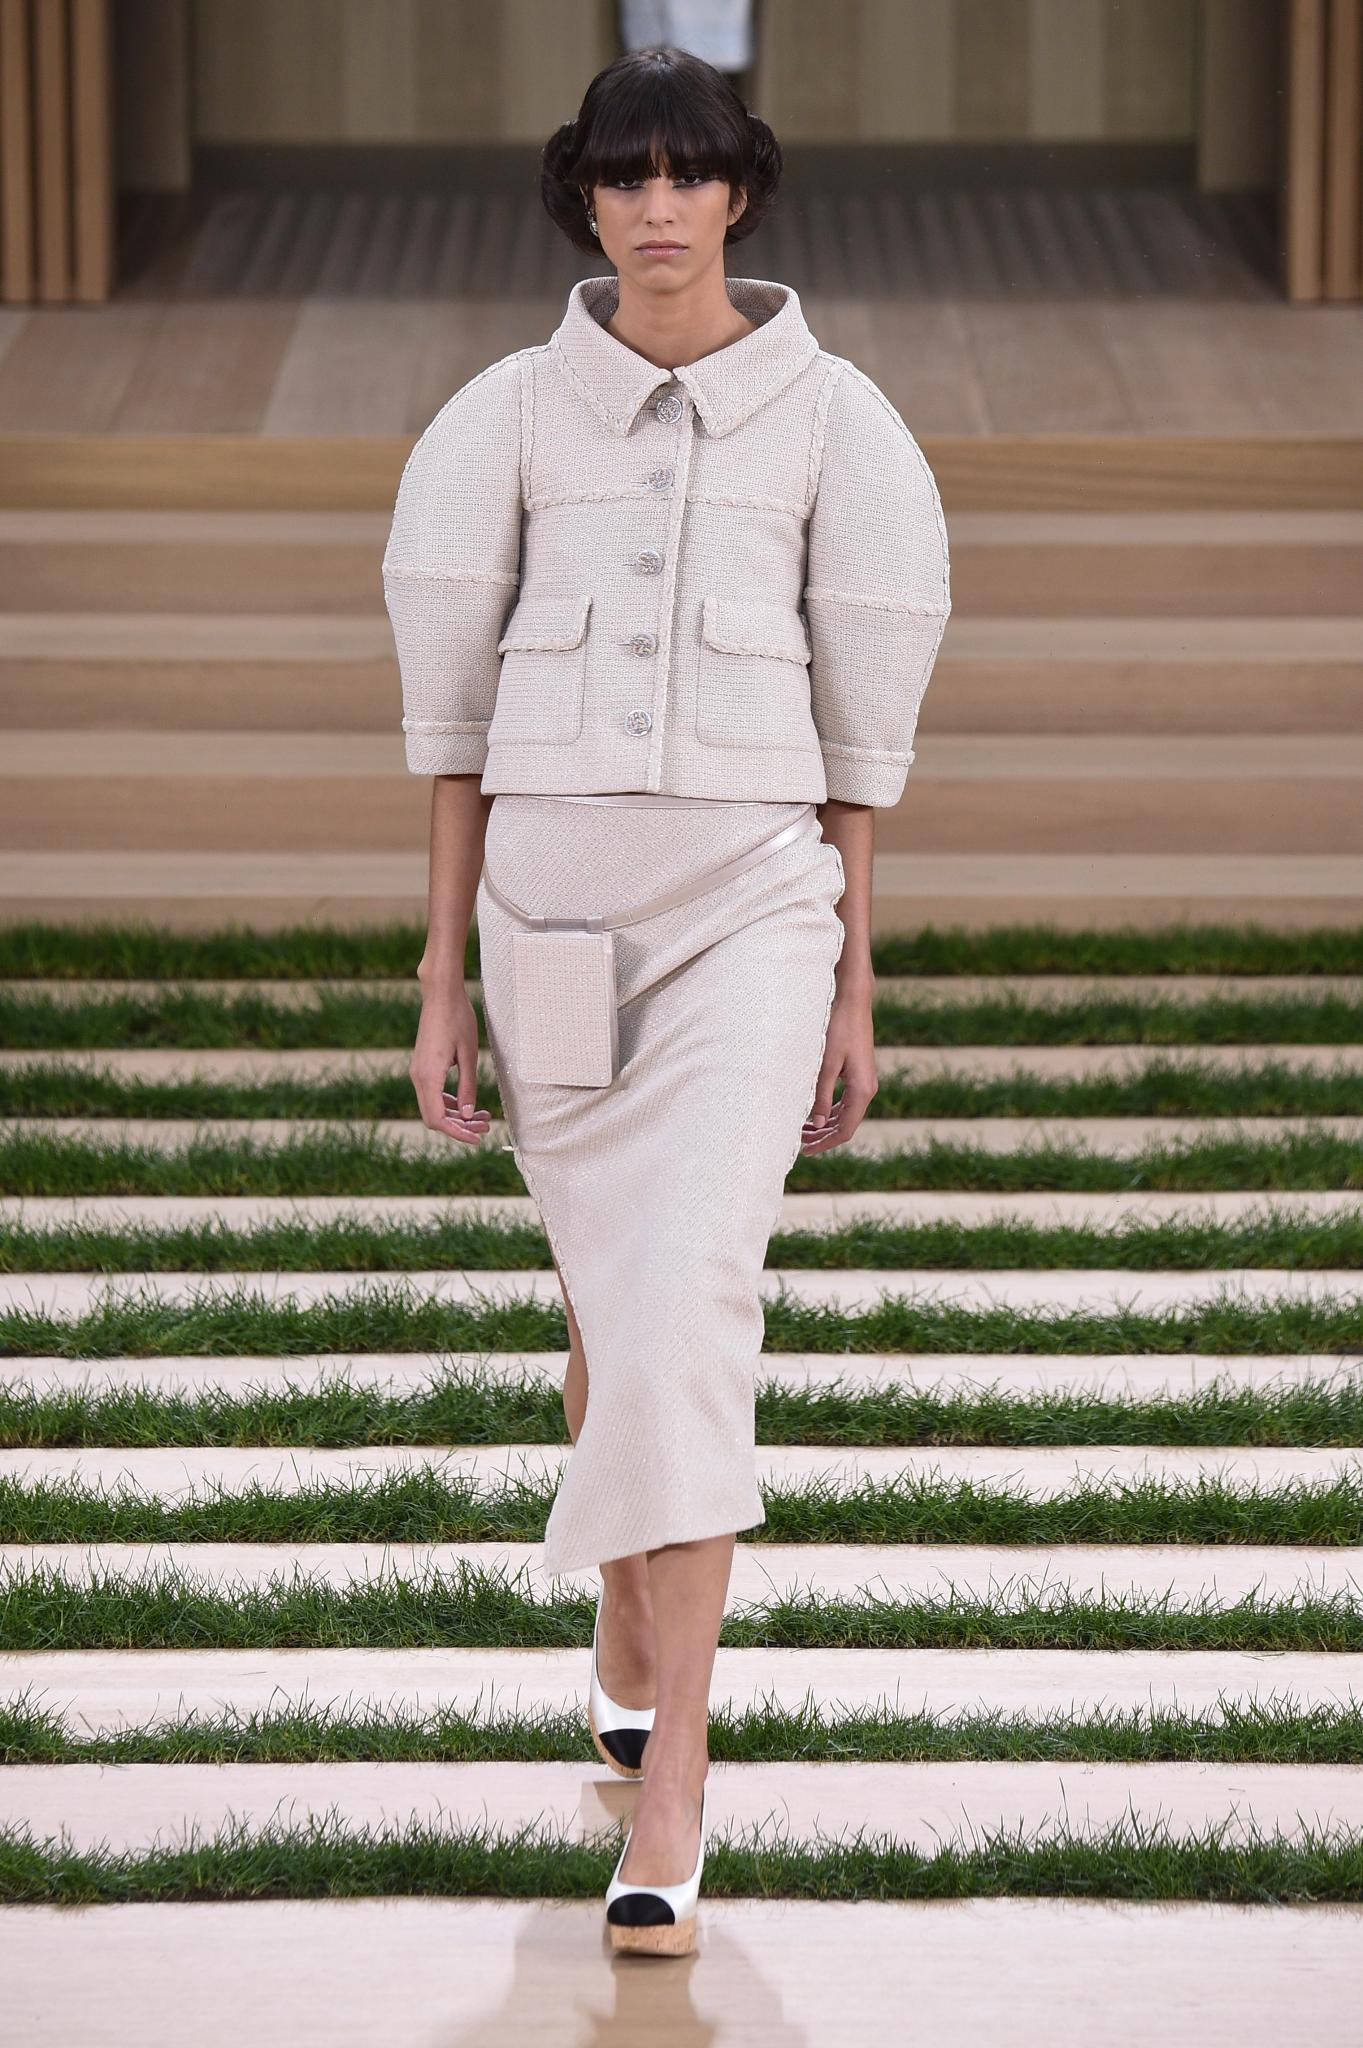 "<p>To showcase its haute couture collection, Chanel had models meander through an impeccably neat garden in chignons and two-tone platforms while wielding iPhone 6 cases that matched their outfit. </p><p>Sticking with a beige palette (""Gabrielle Chanel was the Queen of beige,"" said Karl Lagerfeld backstage), sleeveless evening dresses were accompanied by show-stealing rhinestone capes.</p><p>The collection marked the couture debut of models of the moment Gigi and Bella Hadid, who joined Chanel favourite Kendall Jenner on the runway. </p>"